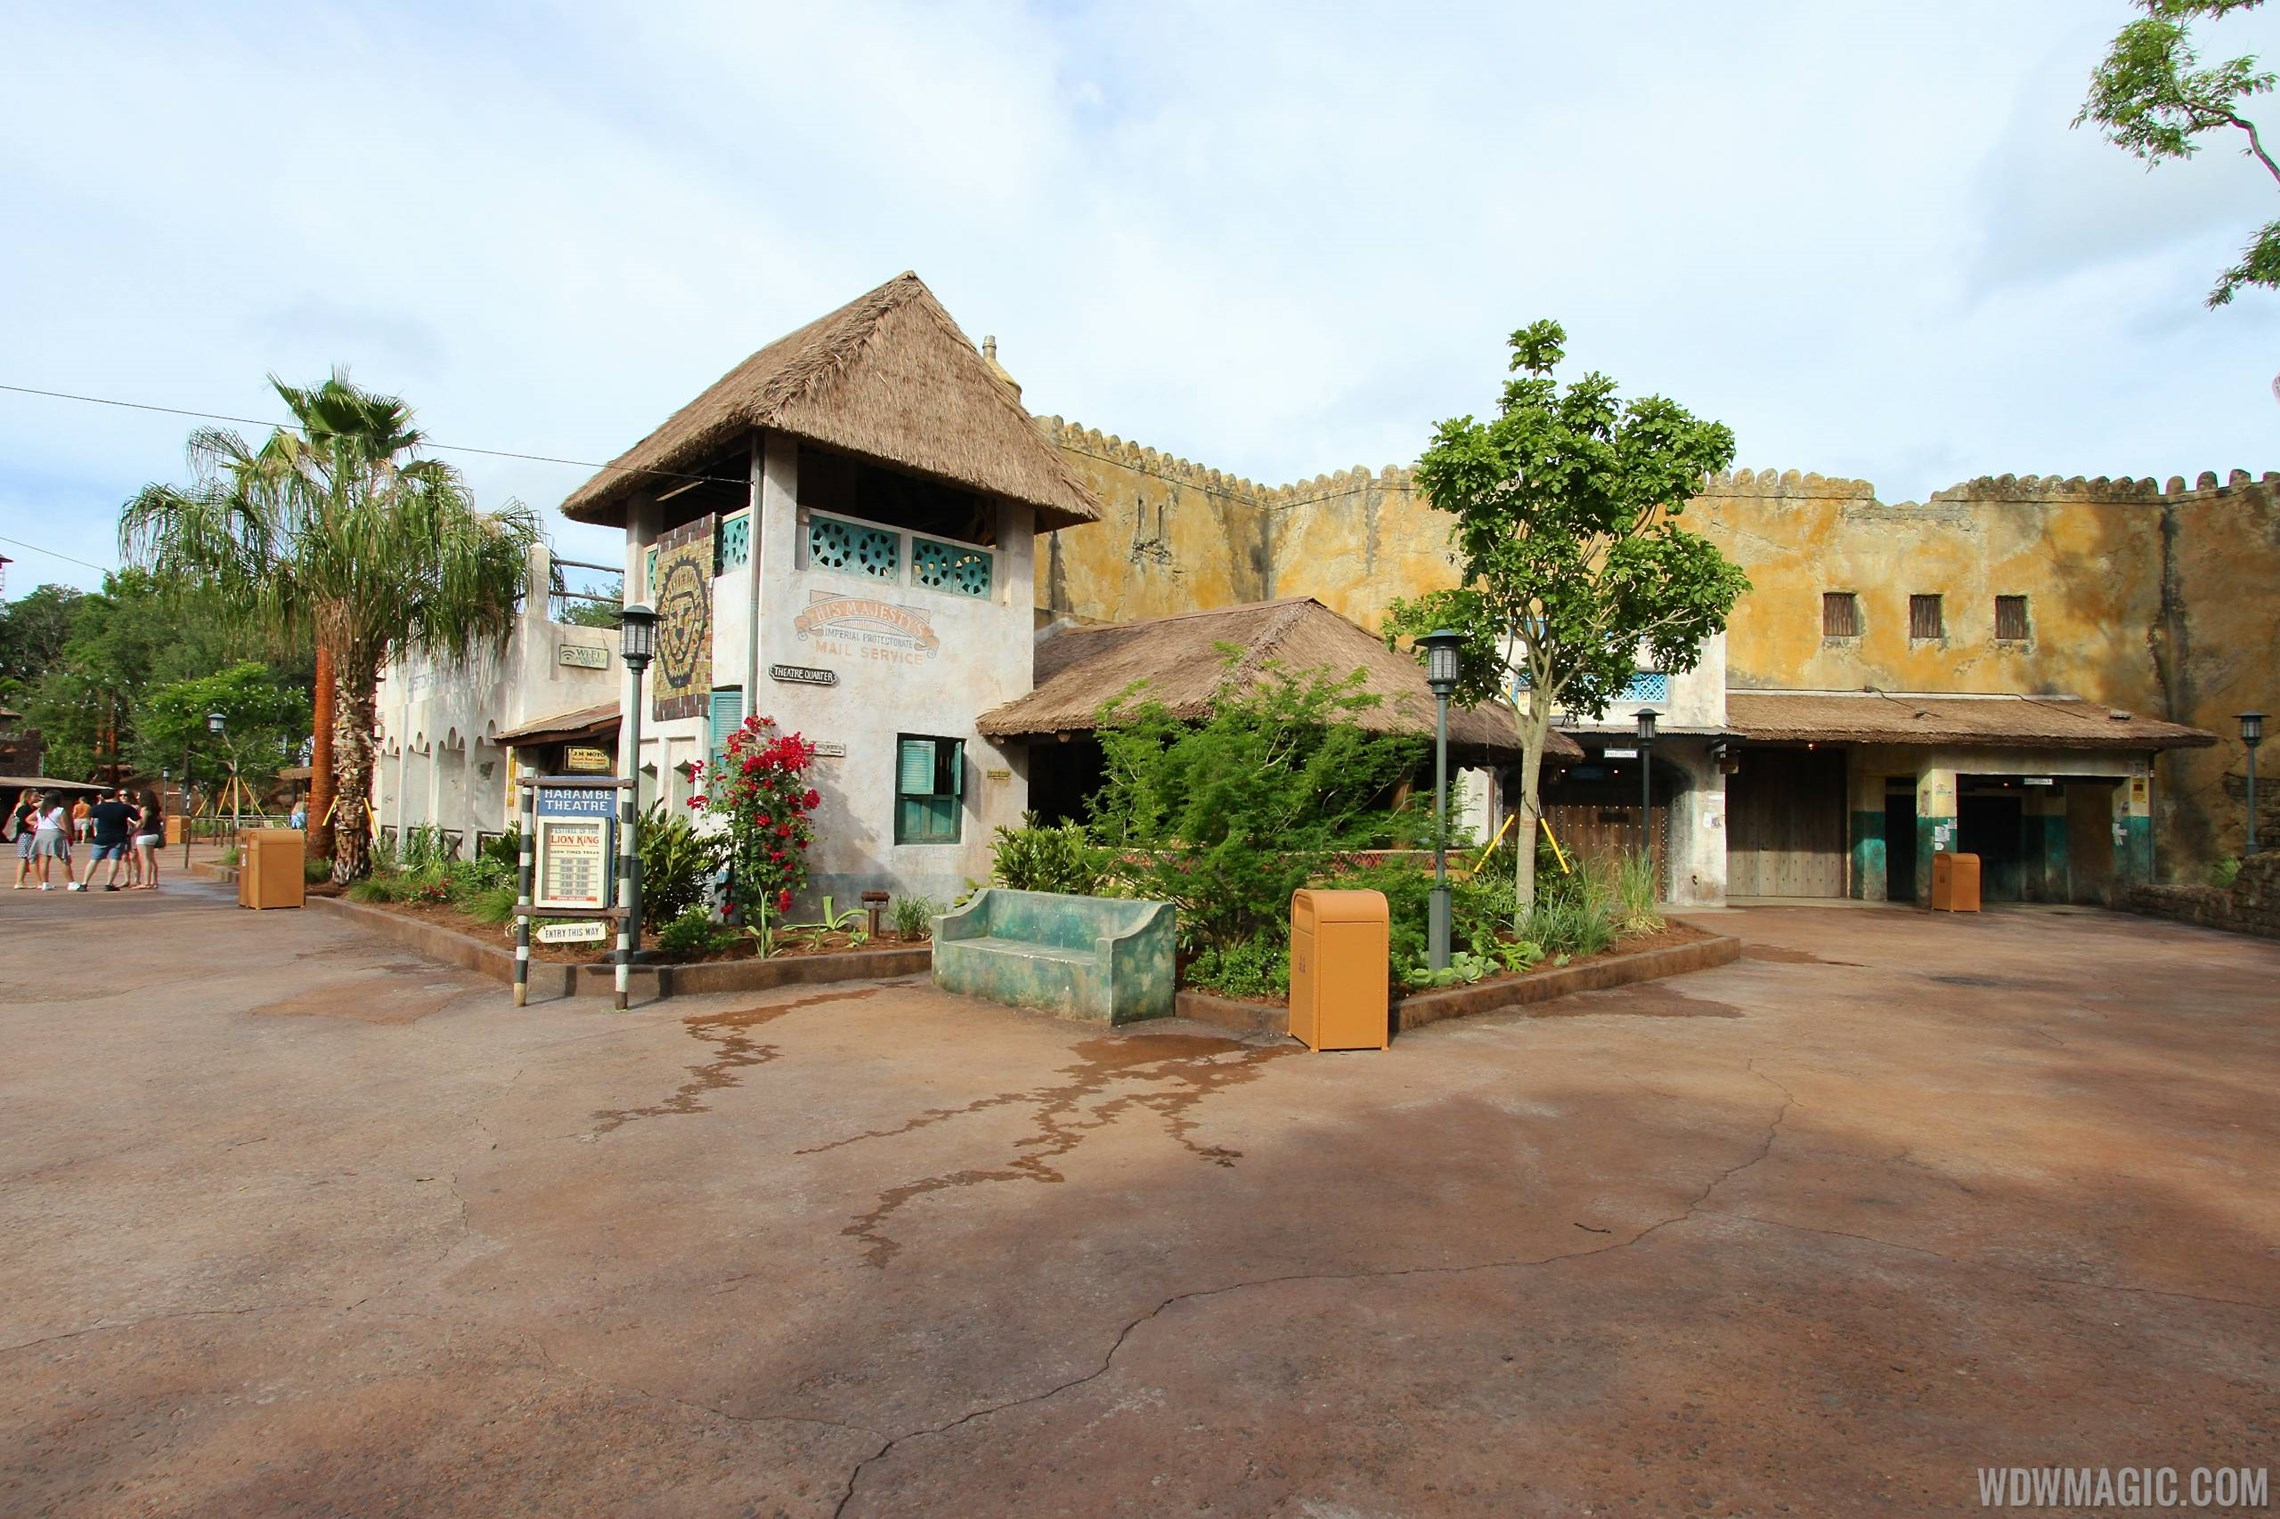 New Harambe Theatre area in Africa